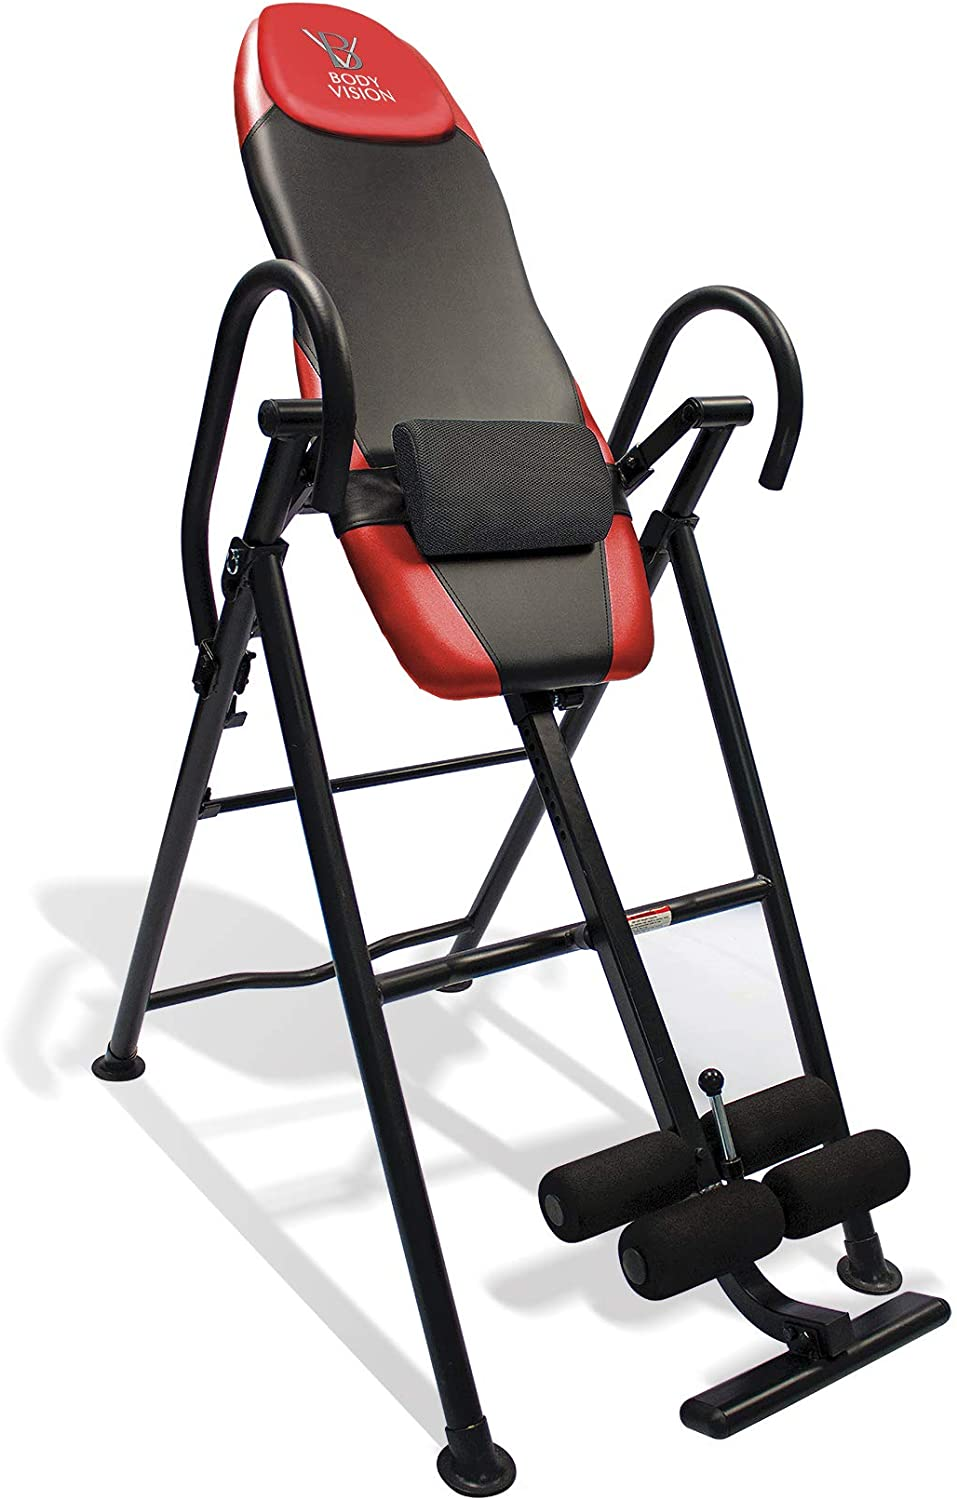 Body Vision IT9550 Adjustable Head Pillow Inversion Table